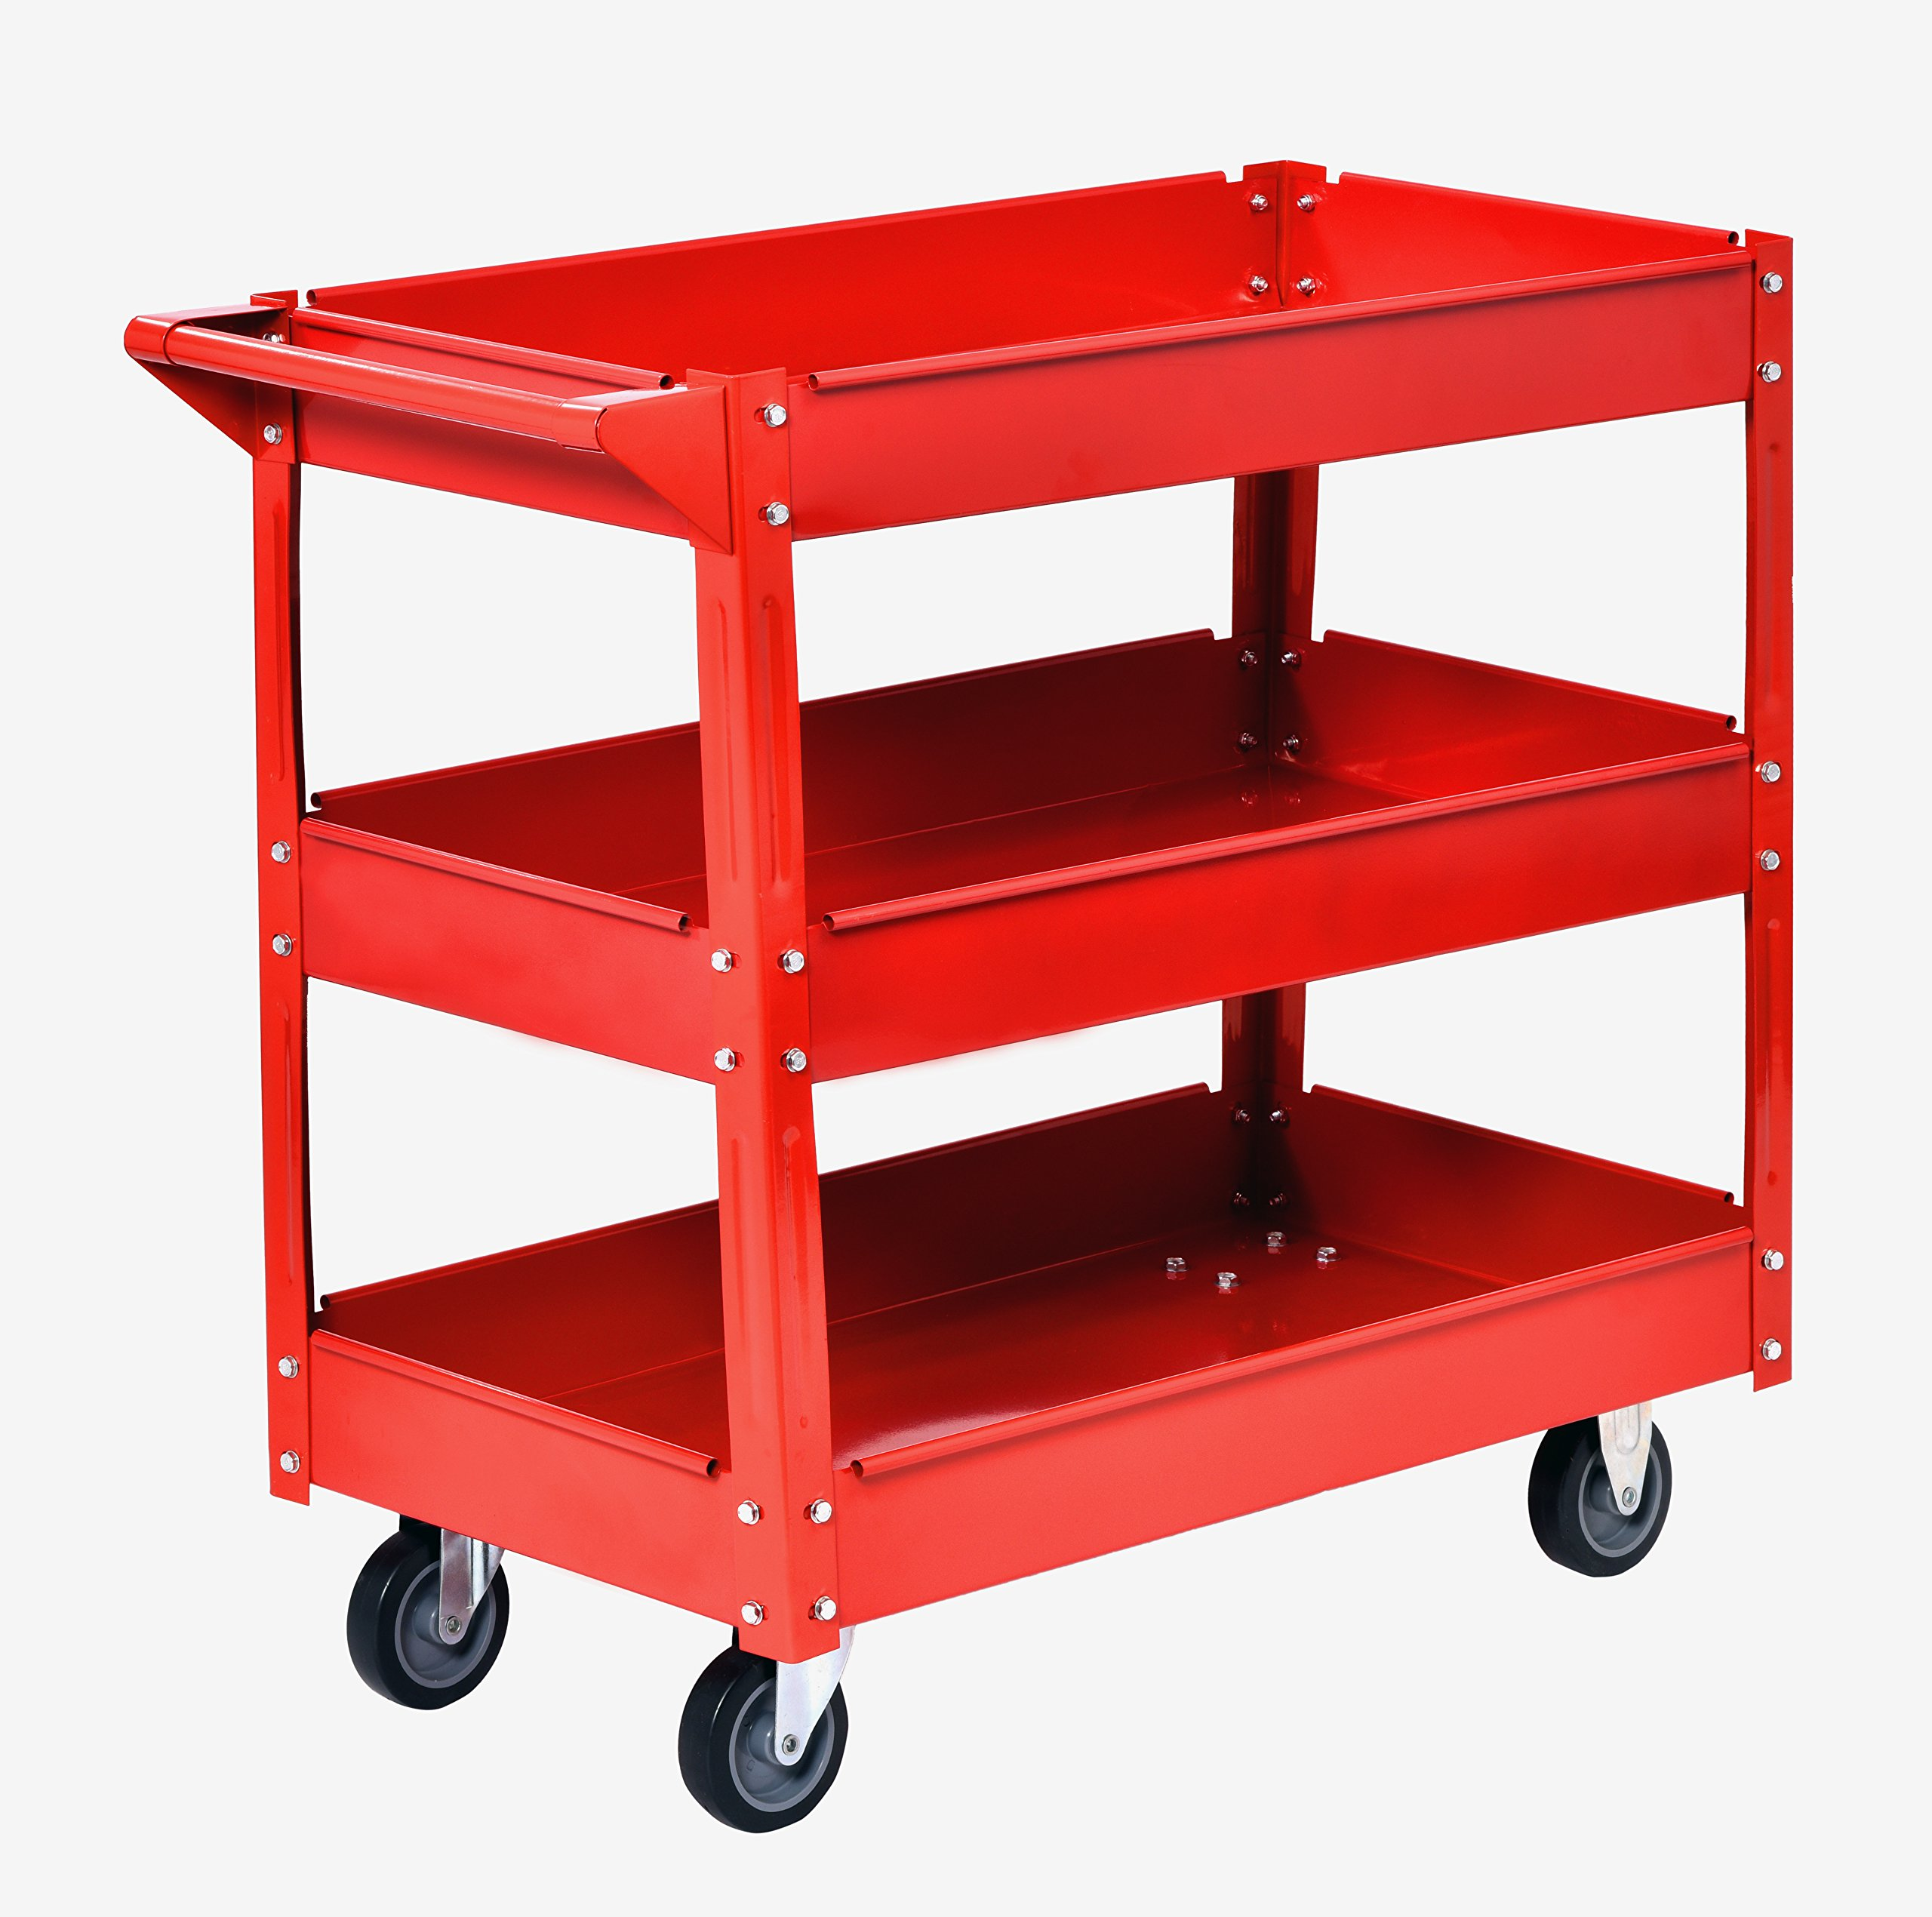 Muscle Carts SC3216 RED Industrial Commercial